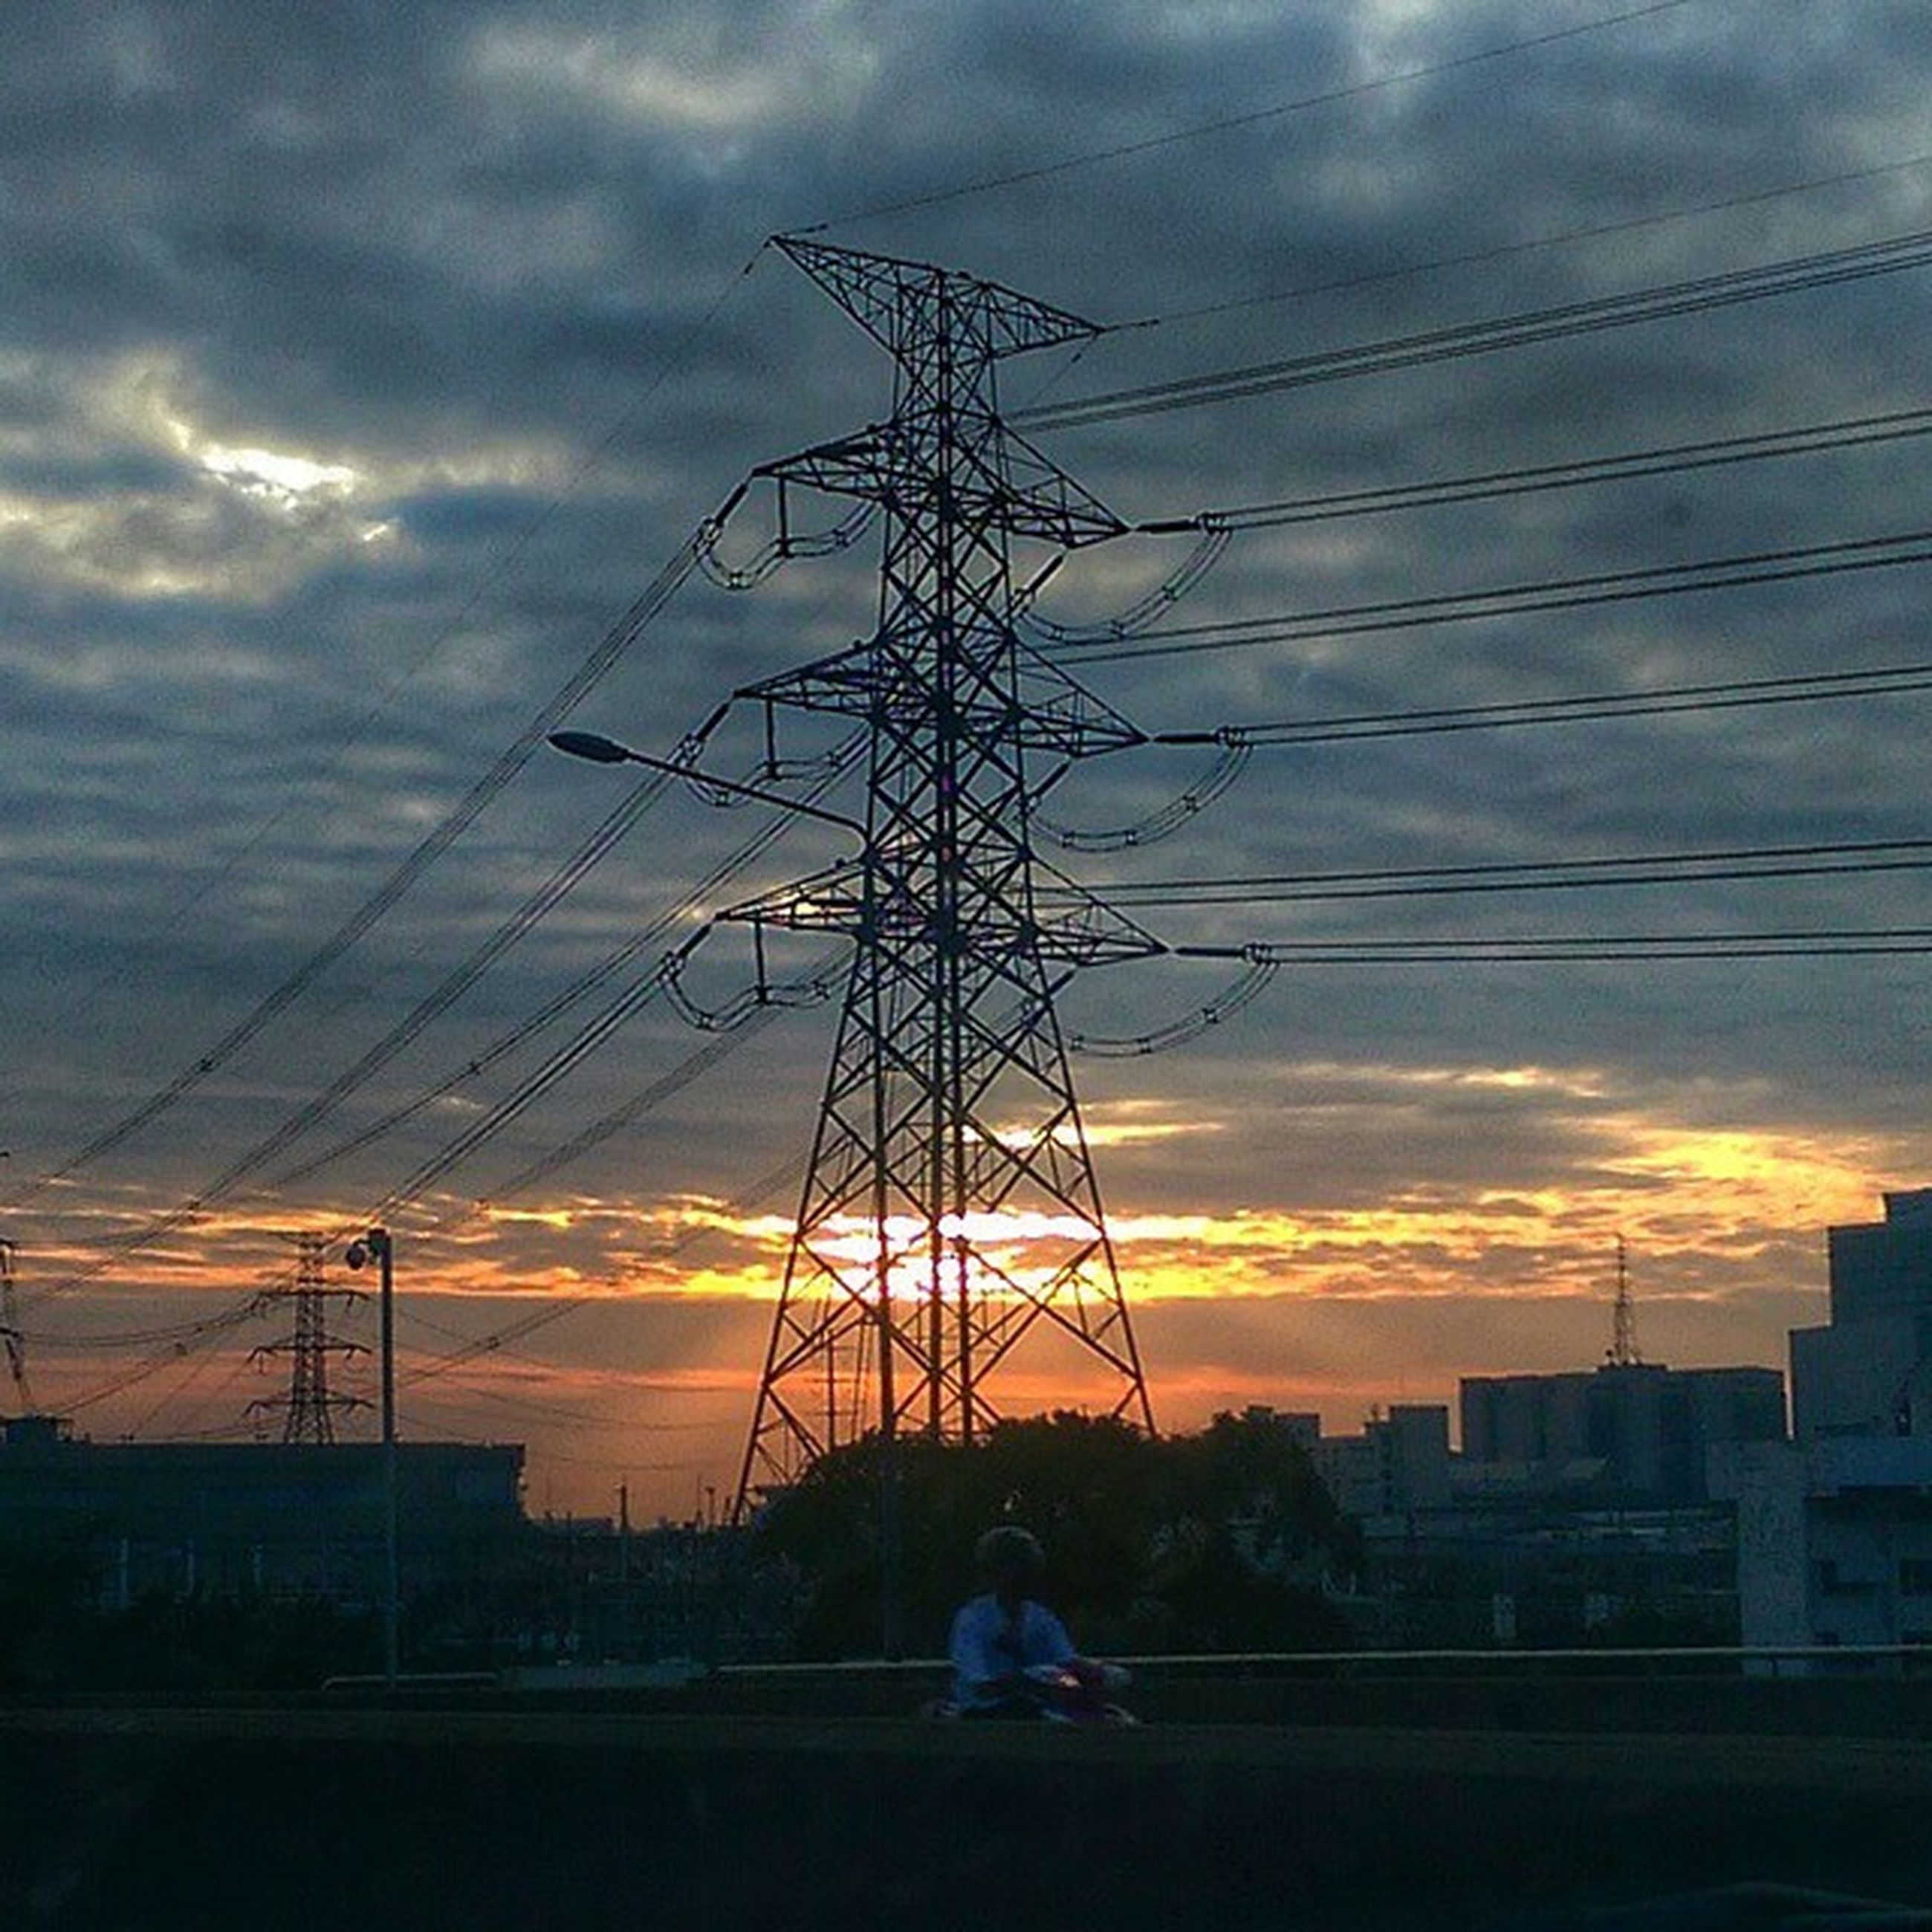 sunset, power line, electricity pylon, sky, silhouette, cloud - sky, power supply, cable, electricity, connection, cloudy, orange color, cloud, fuel and power generation, dramatic sky, technology, power cable, nature, dusk, low angle view